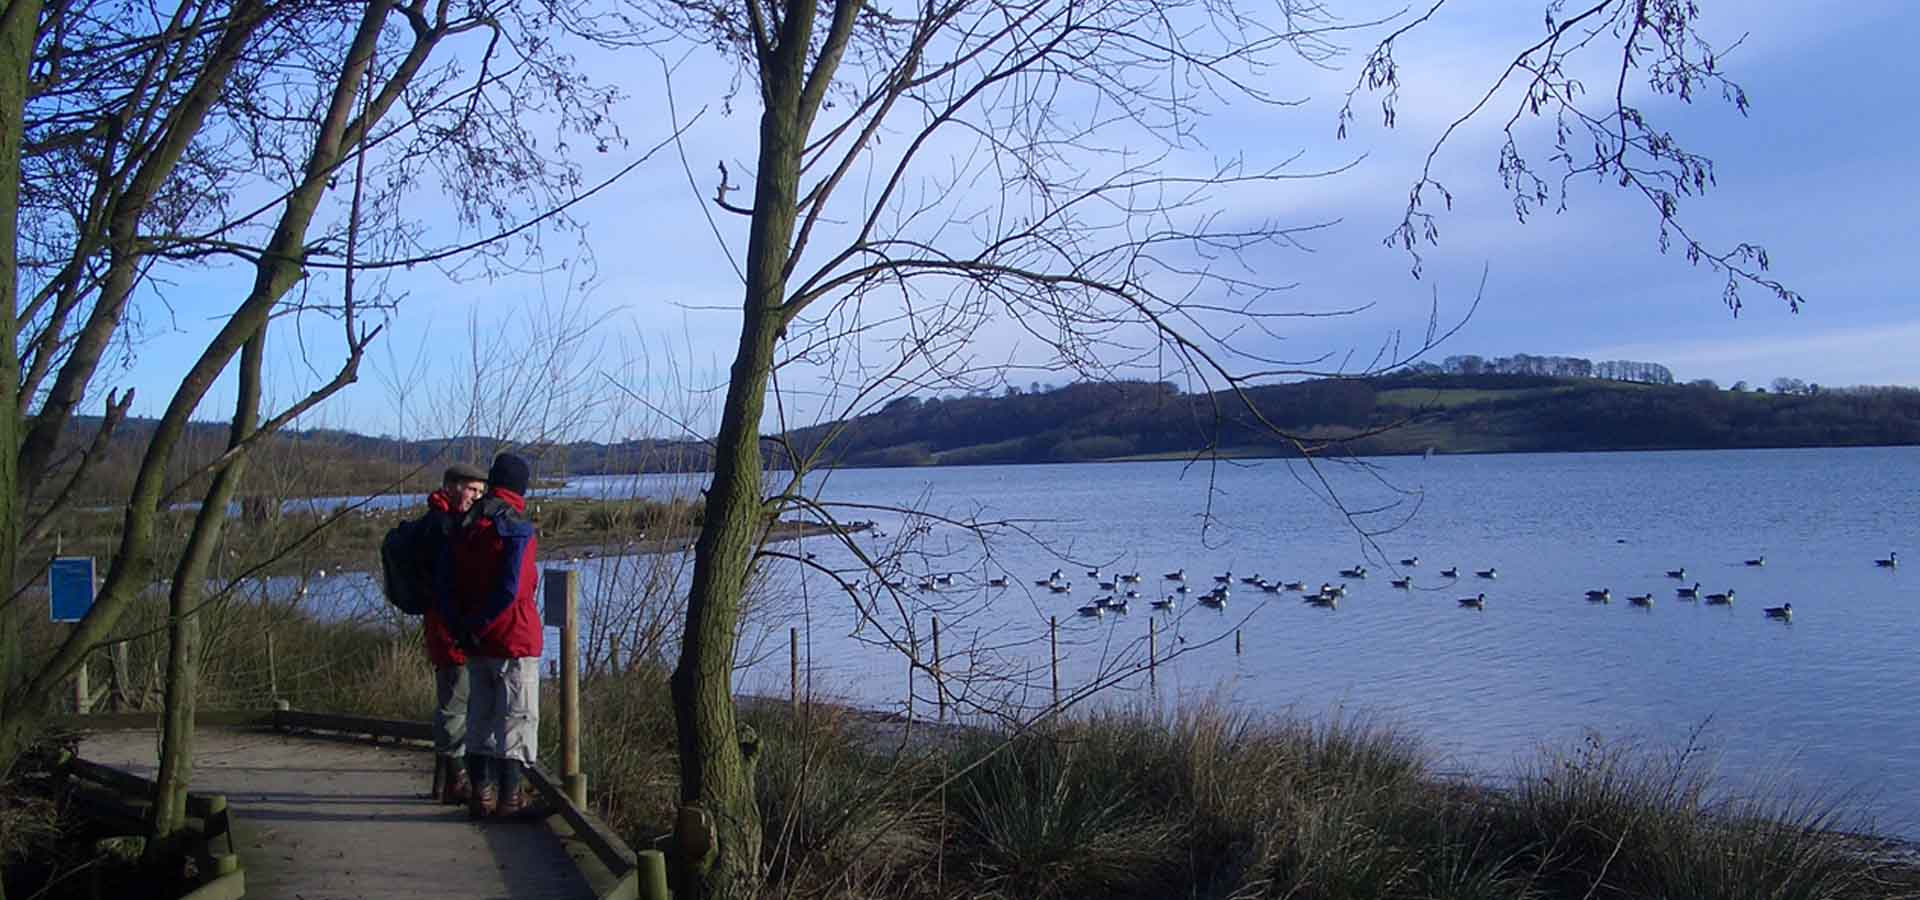 Carsington Water bird reserve